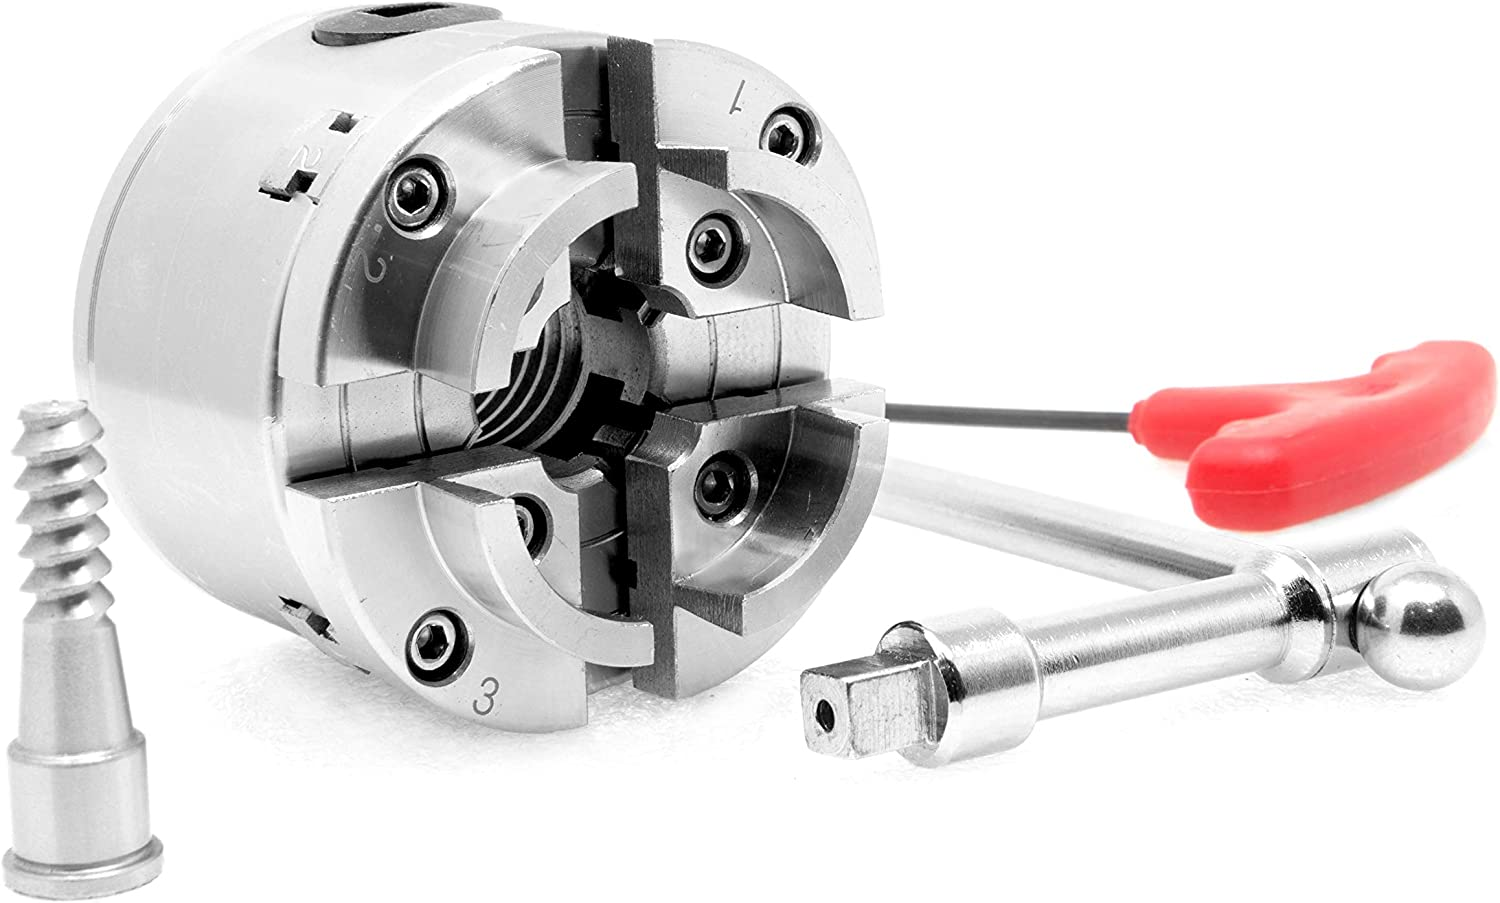 WEN LA4275 2.75-Inch 4-Jaw Self-Centering Keyed Lathe Chuck Set with 1-Inch x 8TPI Thread